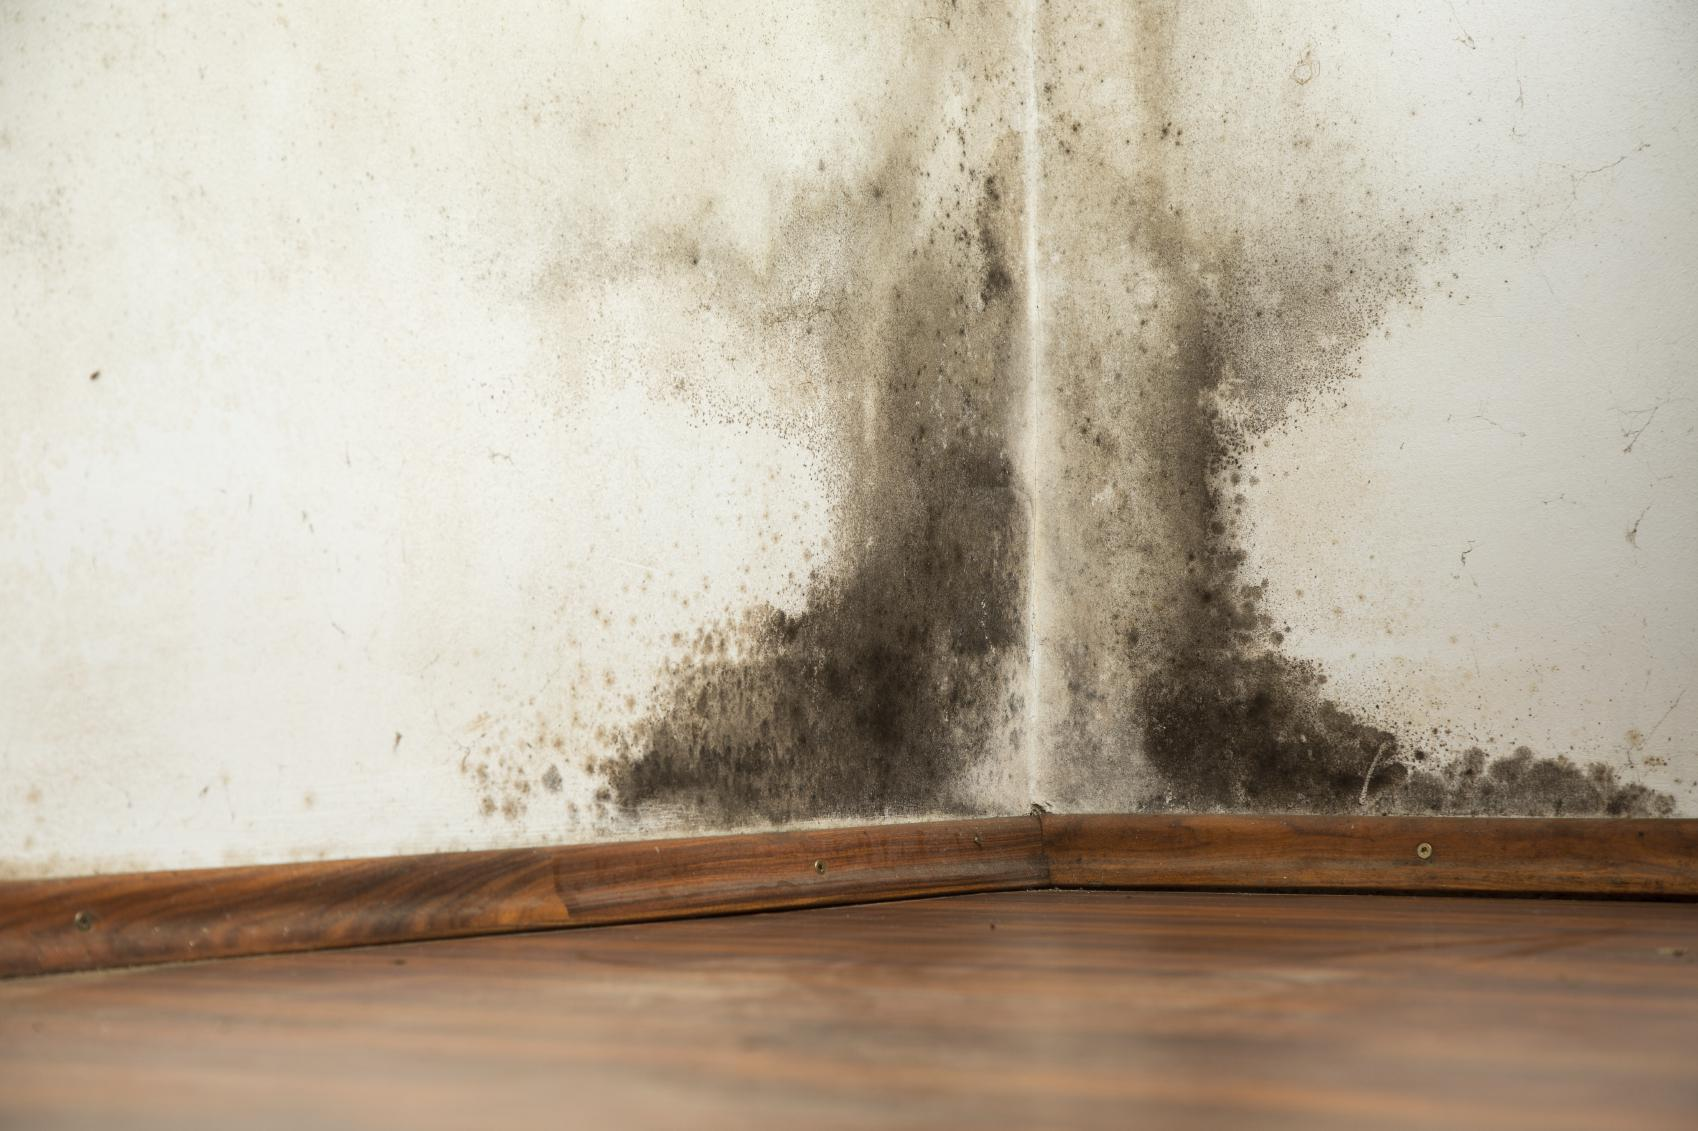 Homeowner's Insurance and Mold: What's Covered and What's Not? on avanteinsurance.com